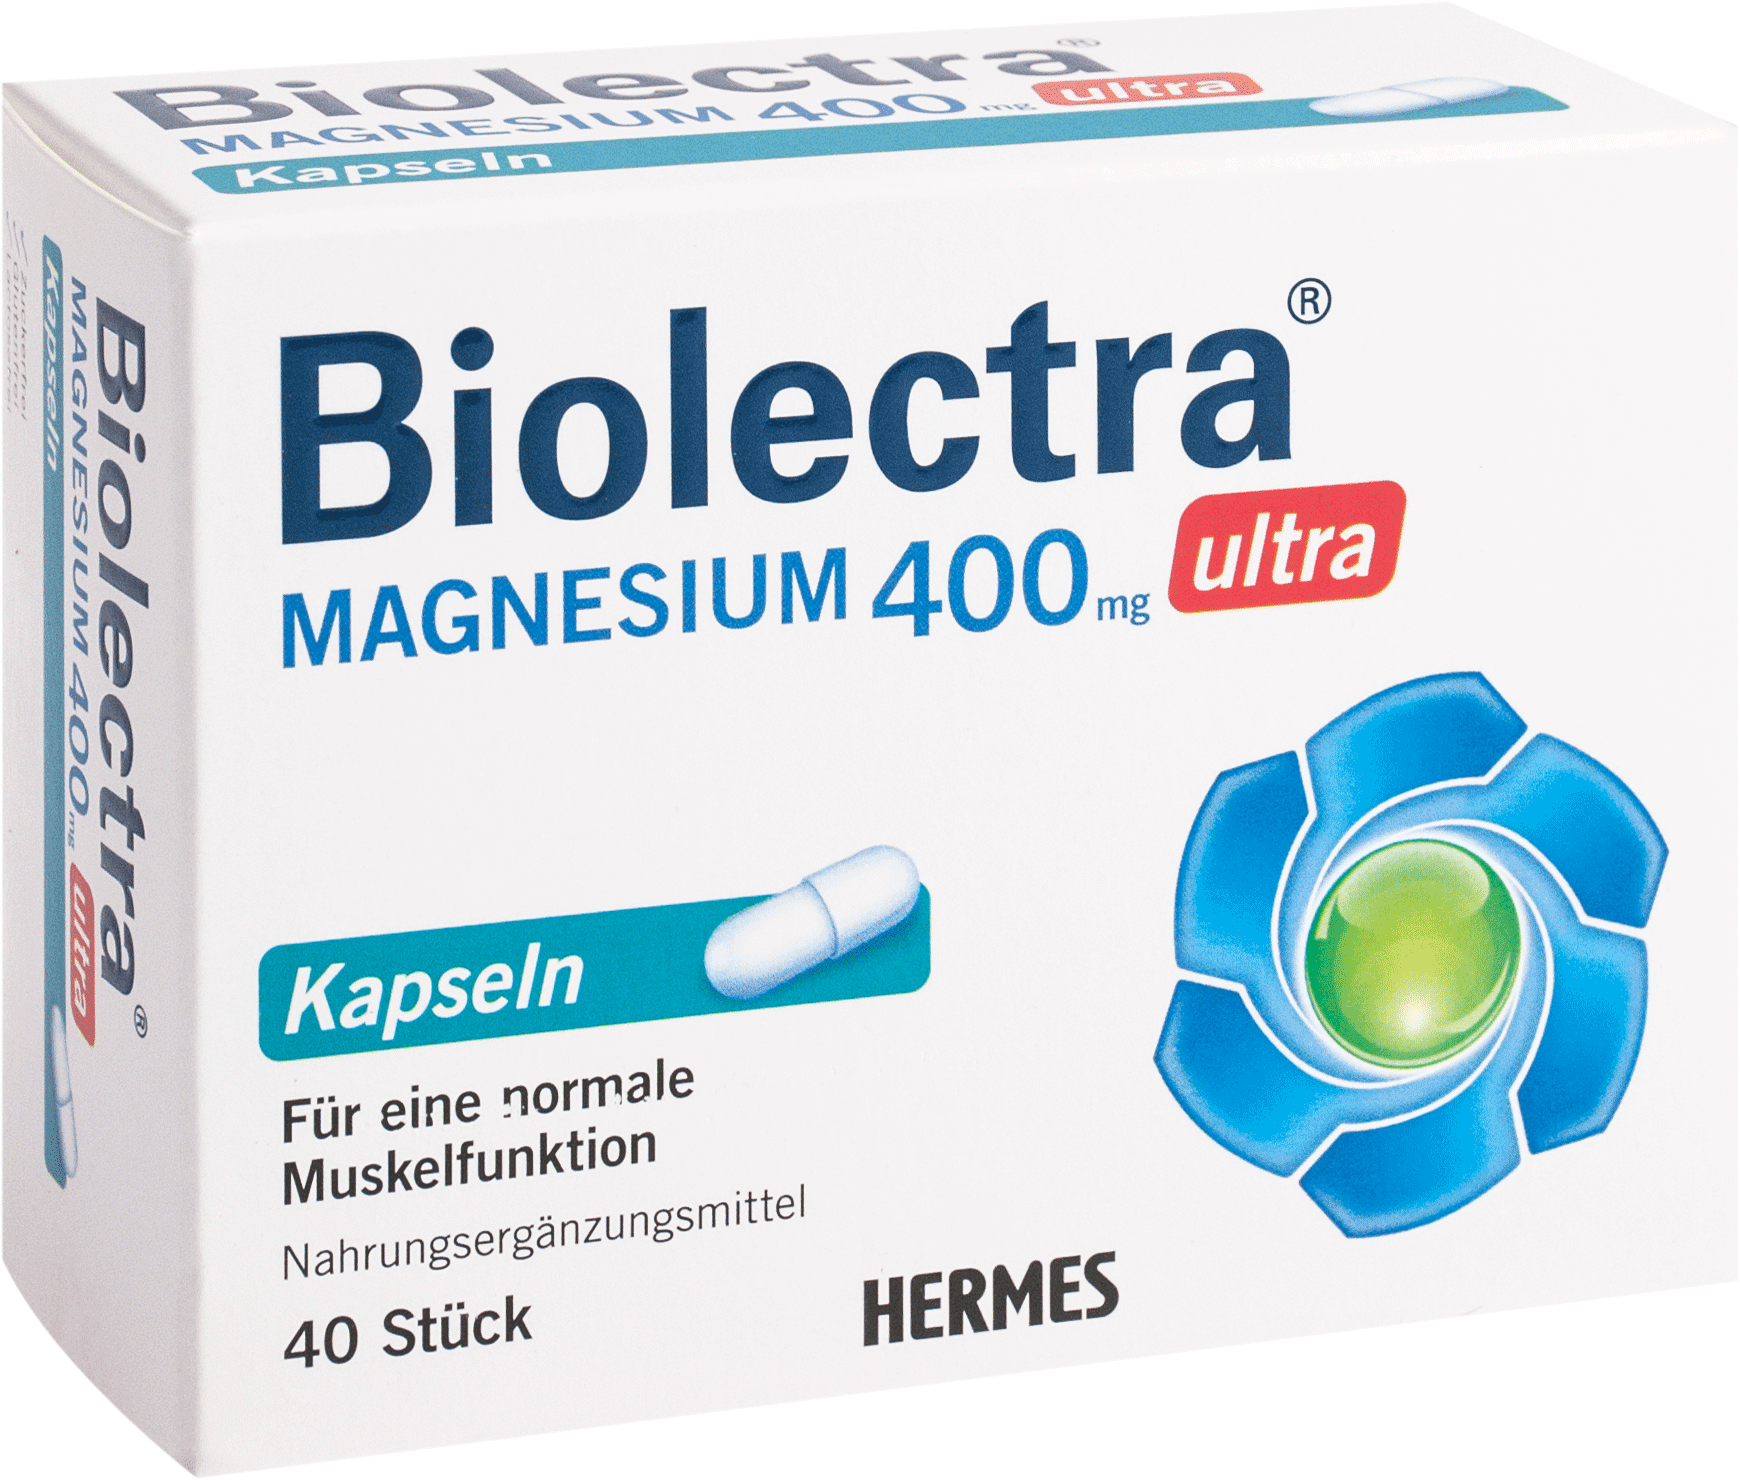 Biolectra Magnesium 400mg ultra